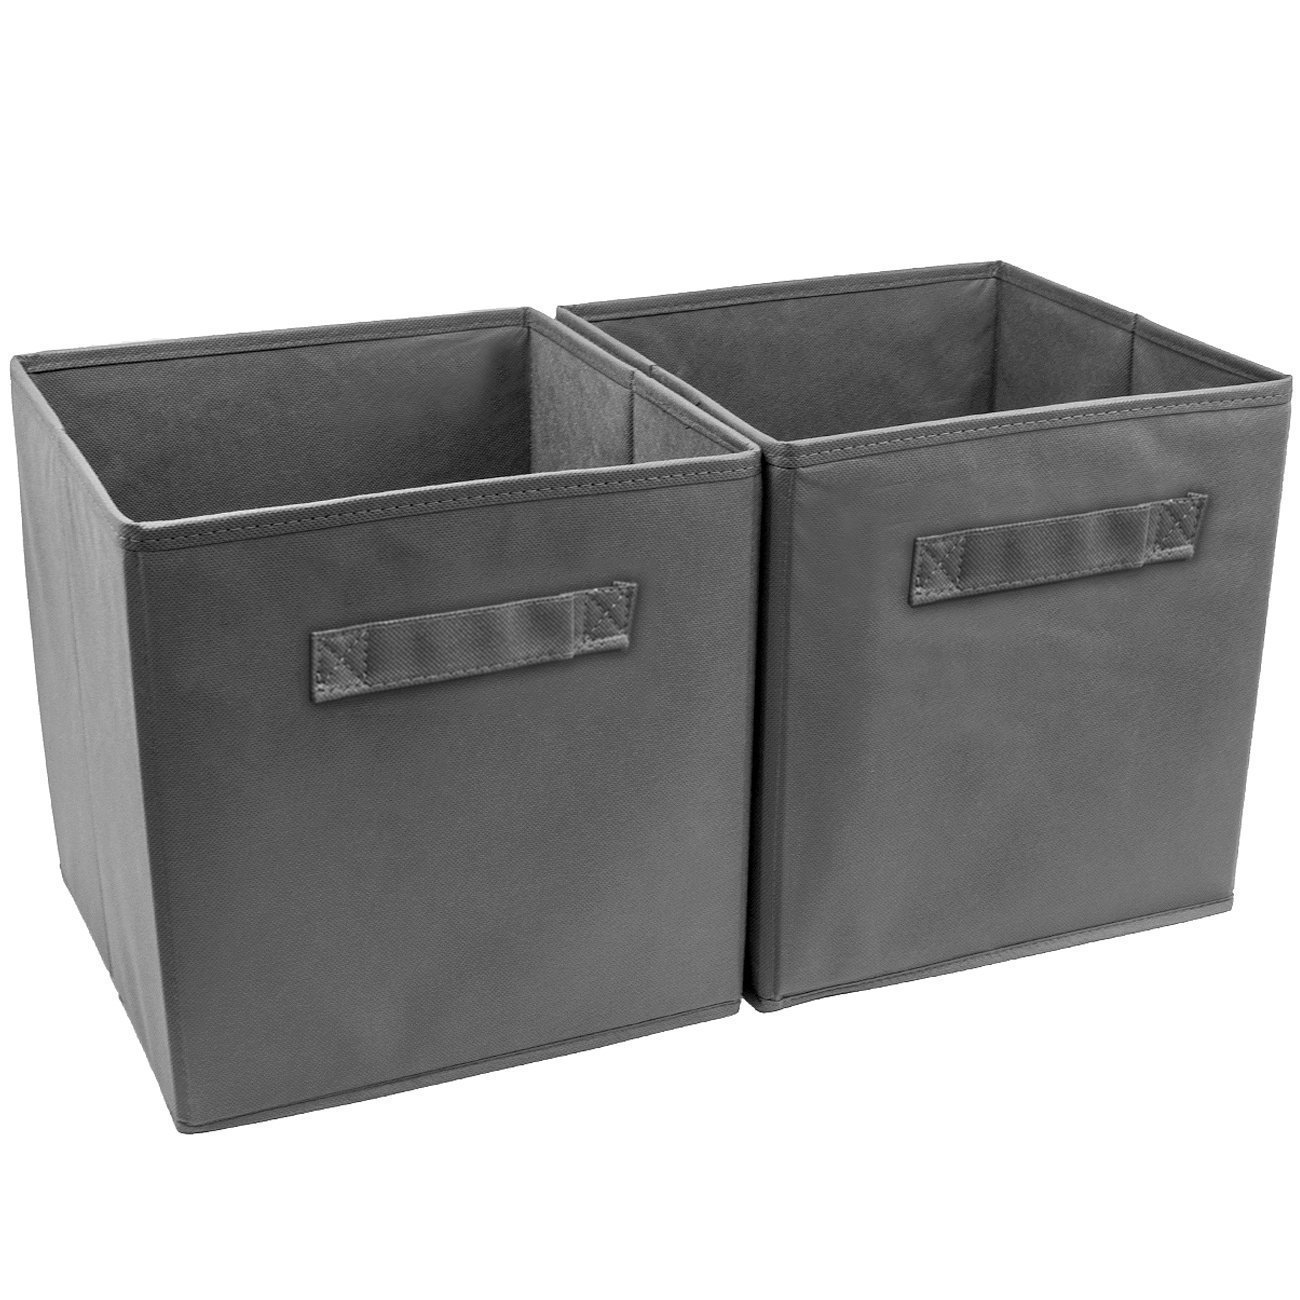 Wtape Practical Foldable Cube Storage Bins, 2-Pack Fabric Drawers, Gray